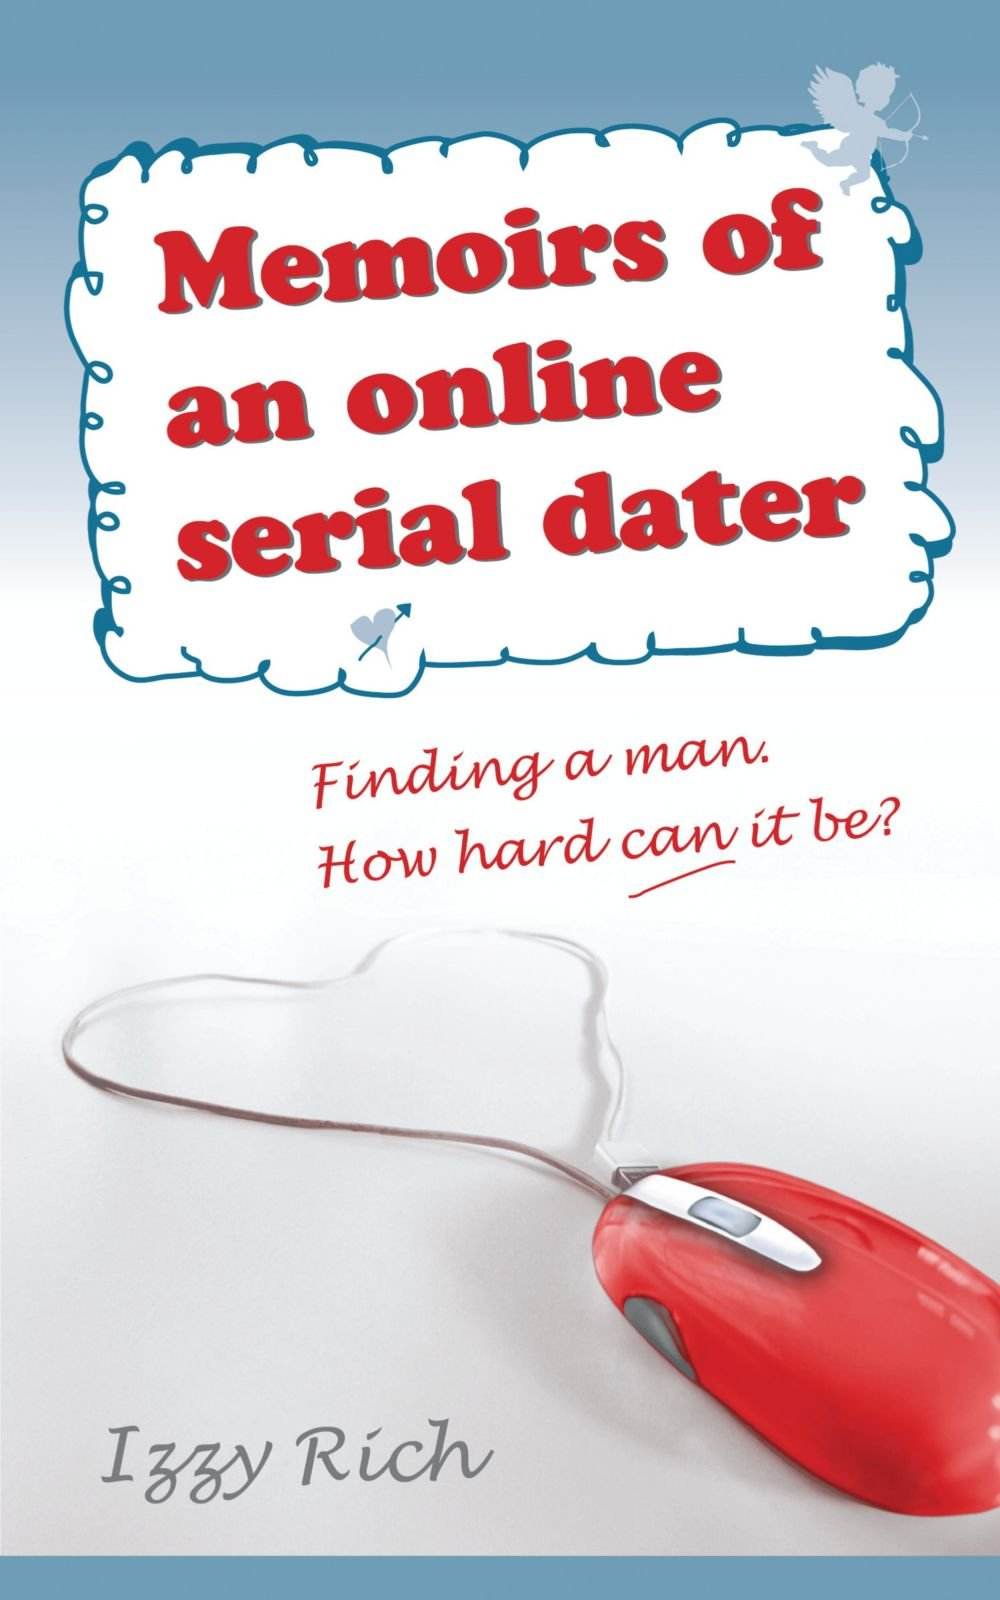 Memoirs of an online serial dater: Finding a man. How hard can it be? ebook